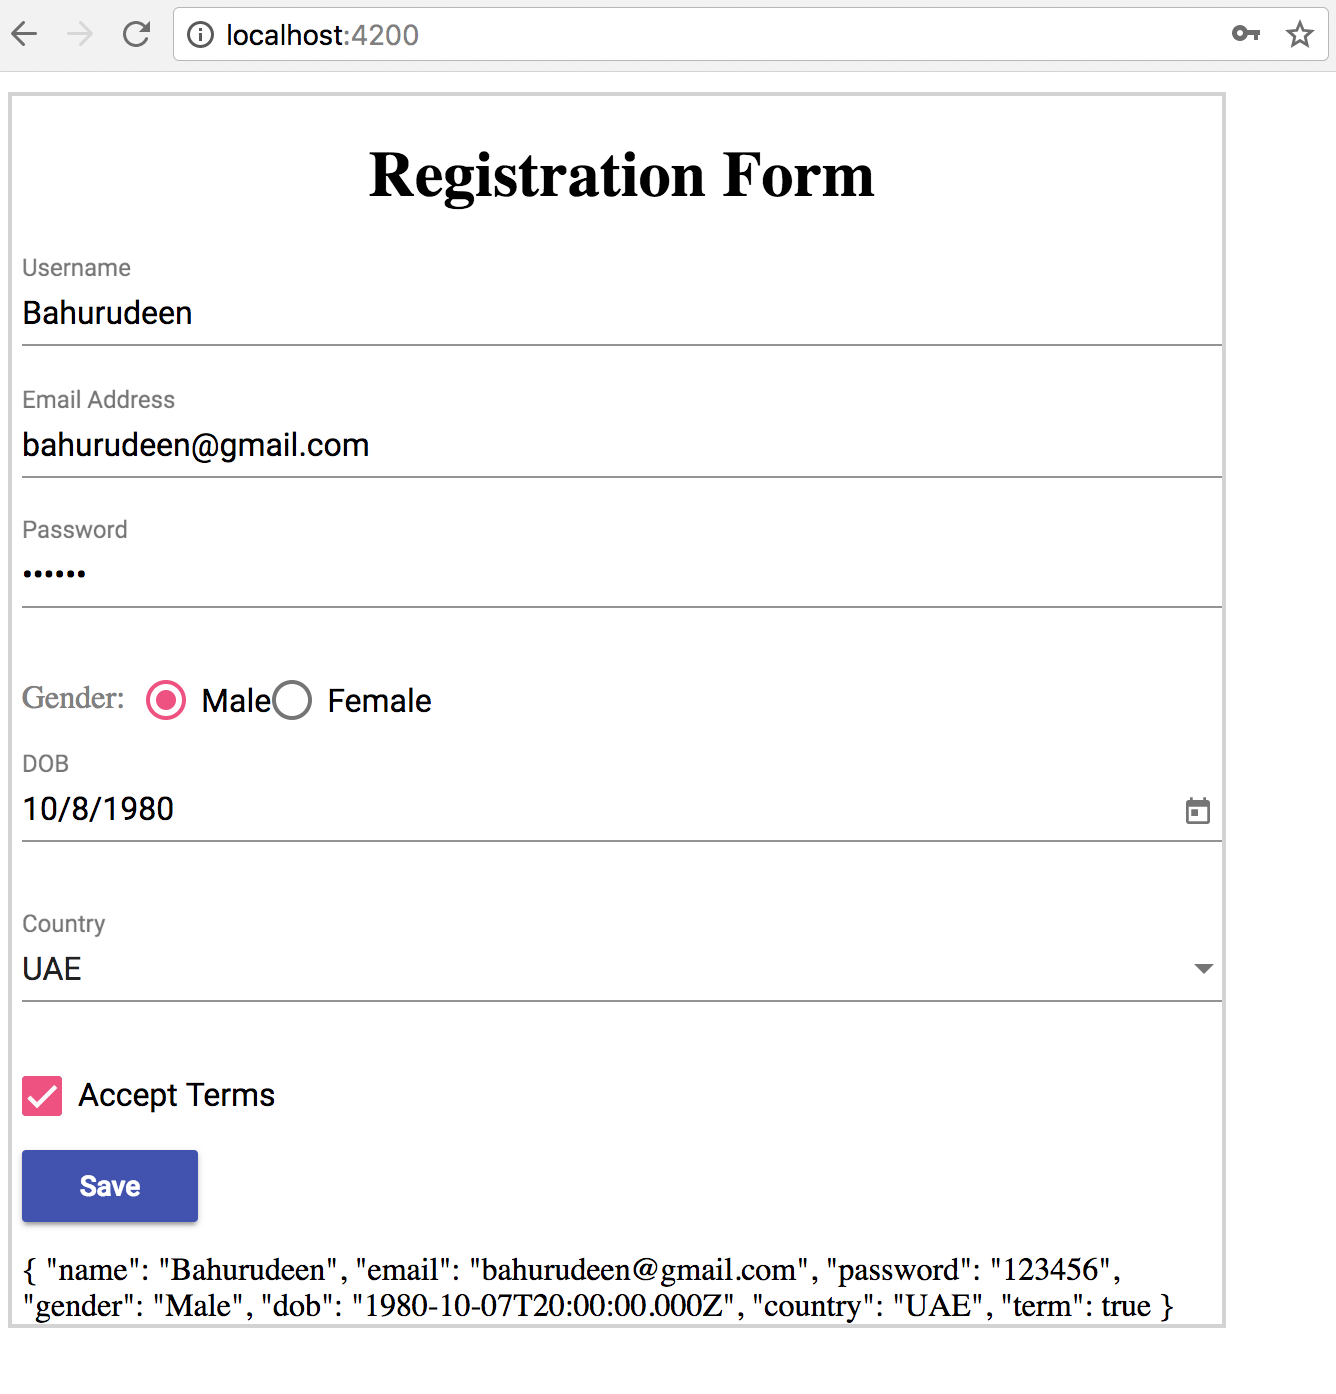 Create a dynamic form with configurable fields and